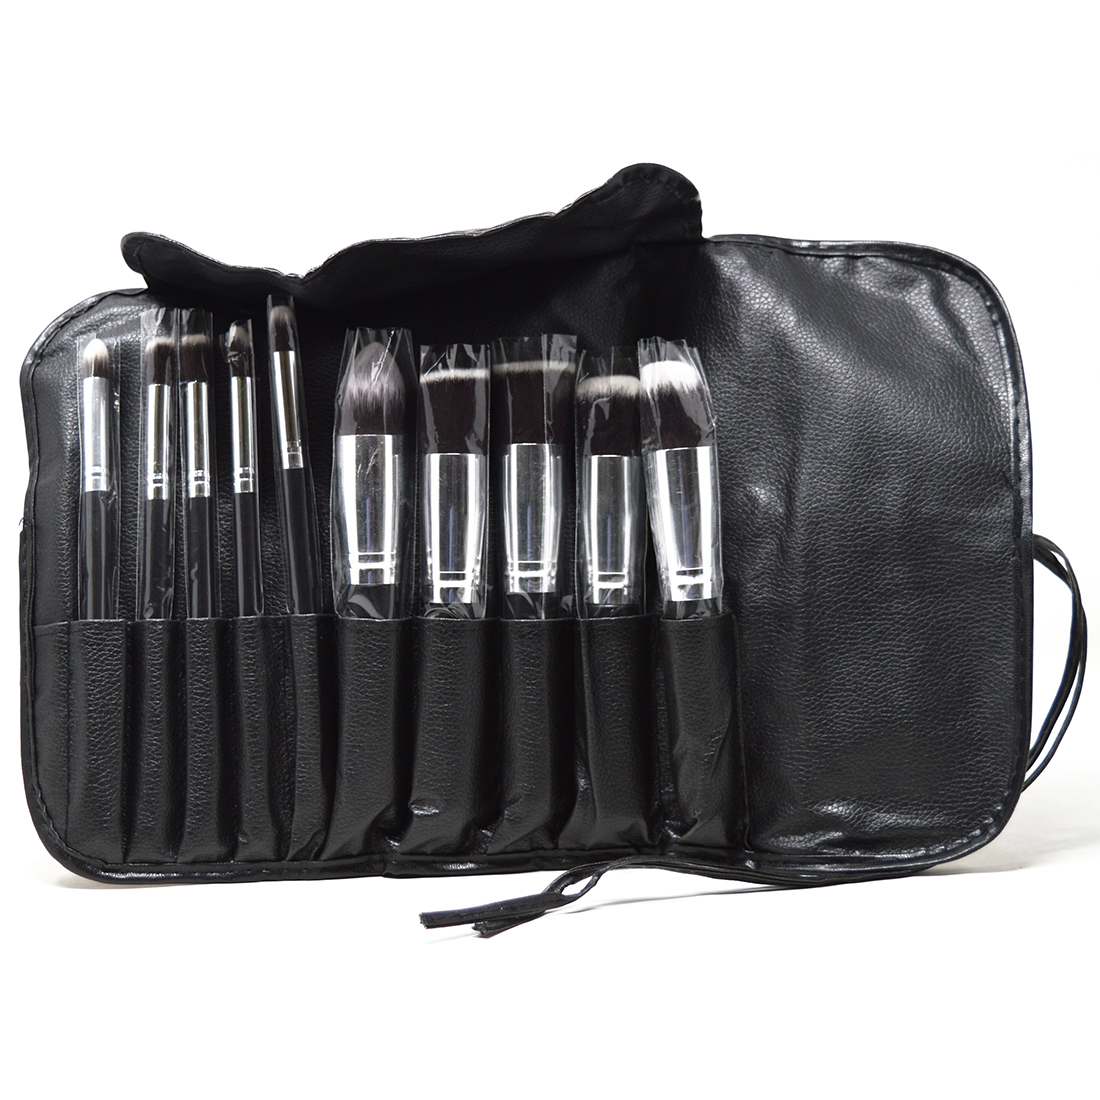 Mars Makeup Brush Set With Black Wallet, Set of 10 With Lilium Hand Cleanser